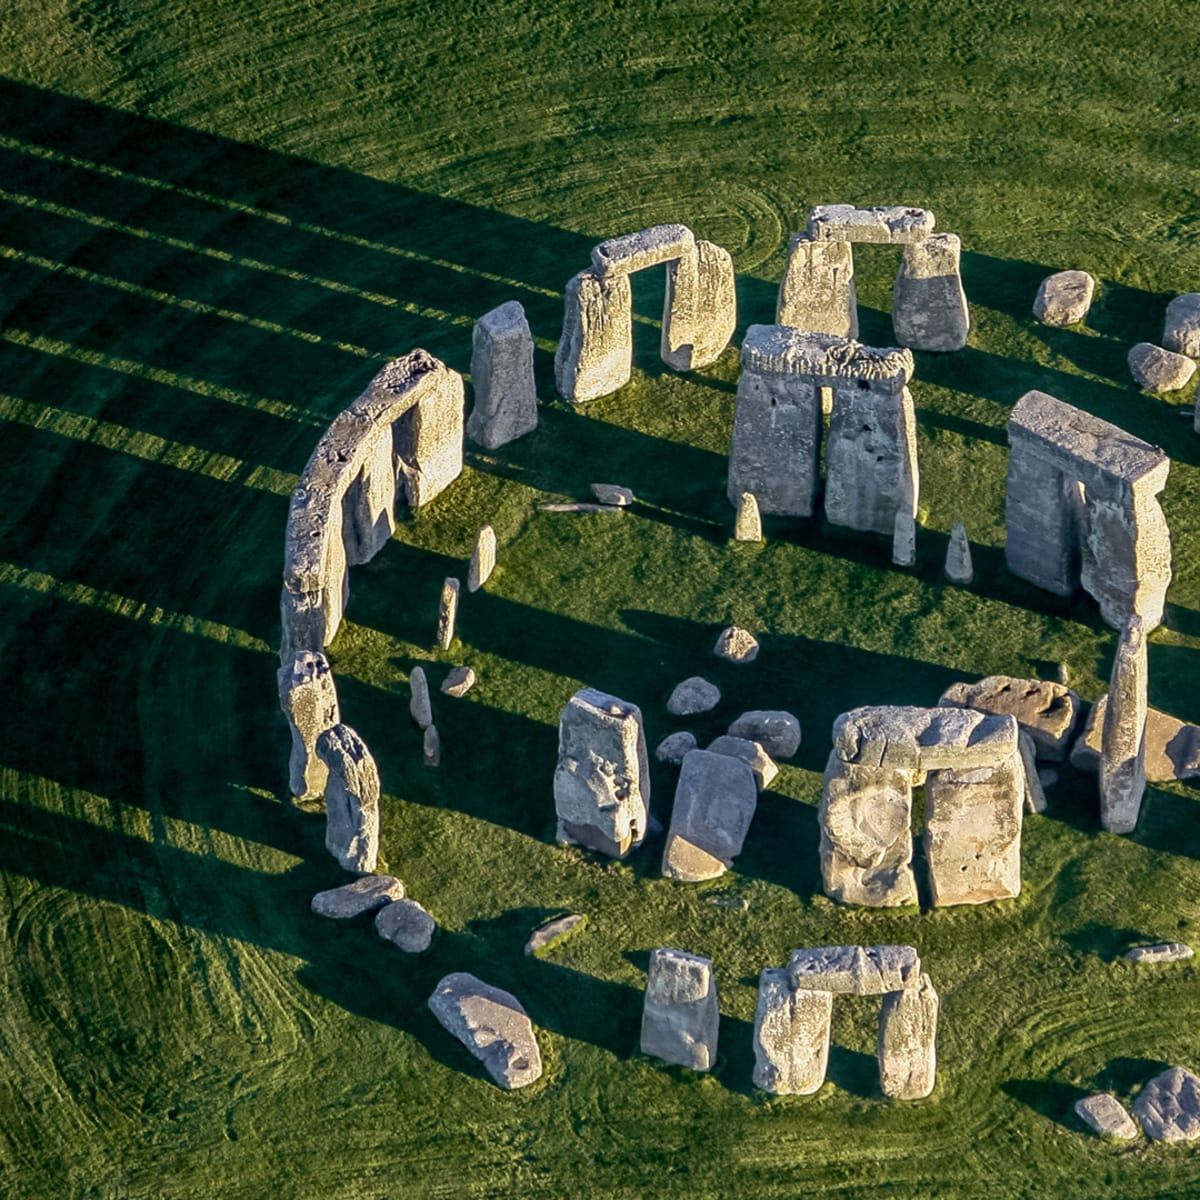 Stonehenge mystery: Archaeologists find ancient stones create 'enhanced acoustic space' Topic-stonehenge-gettyimages-682586546